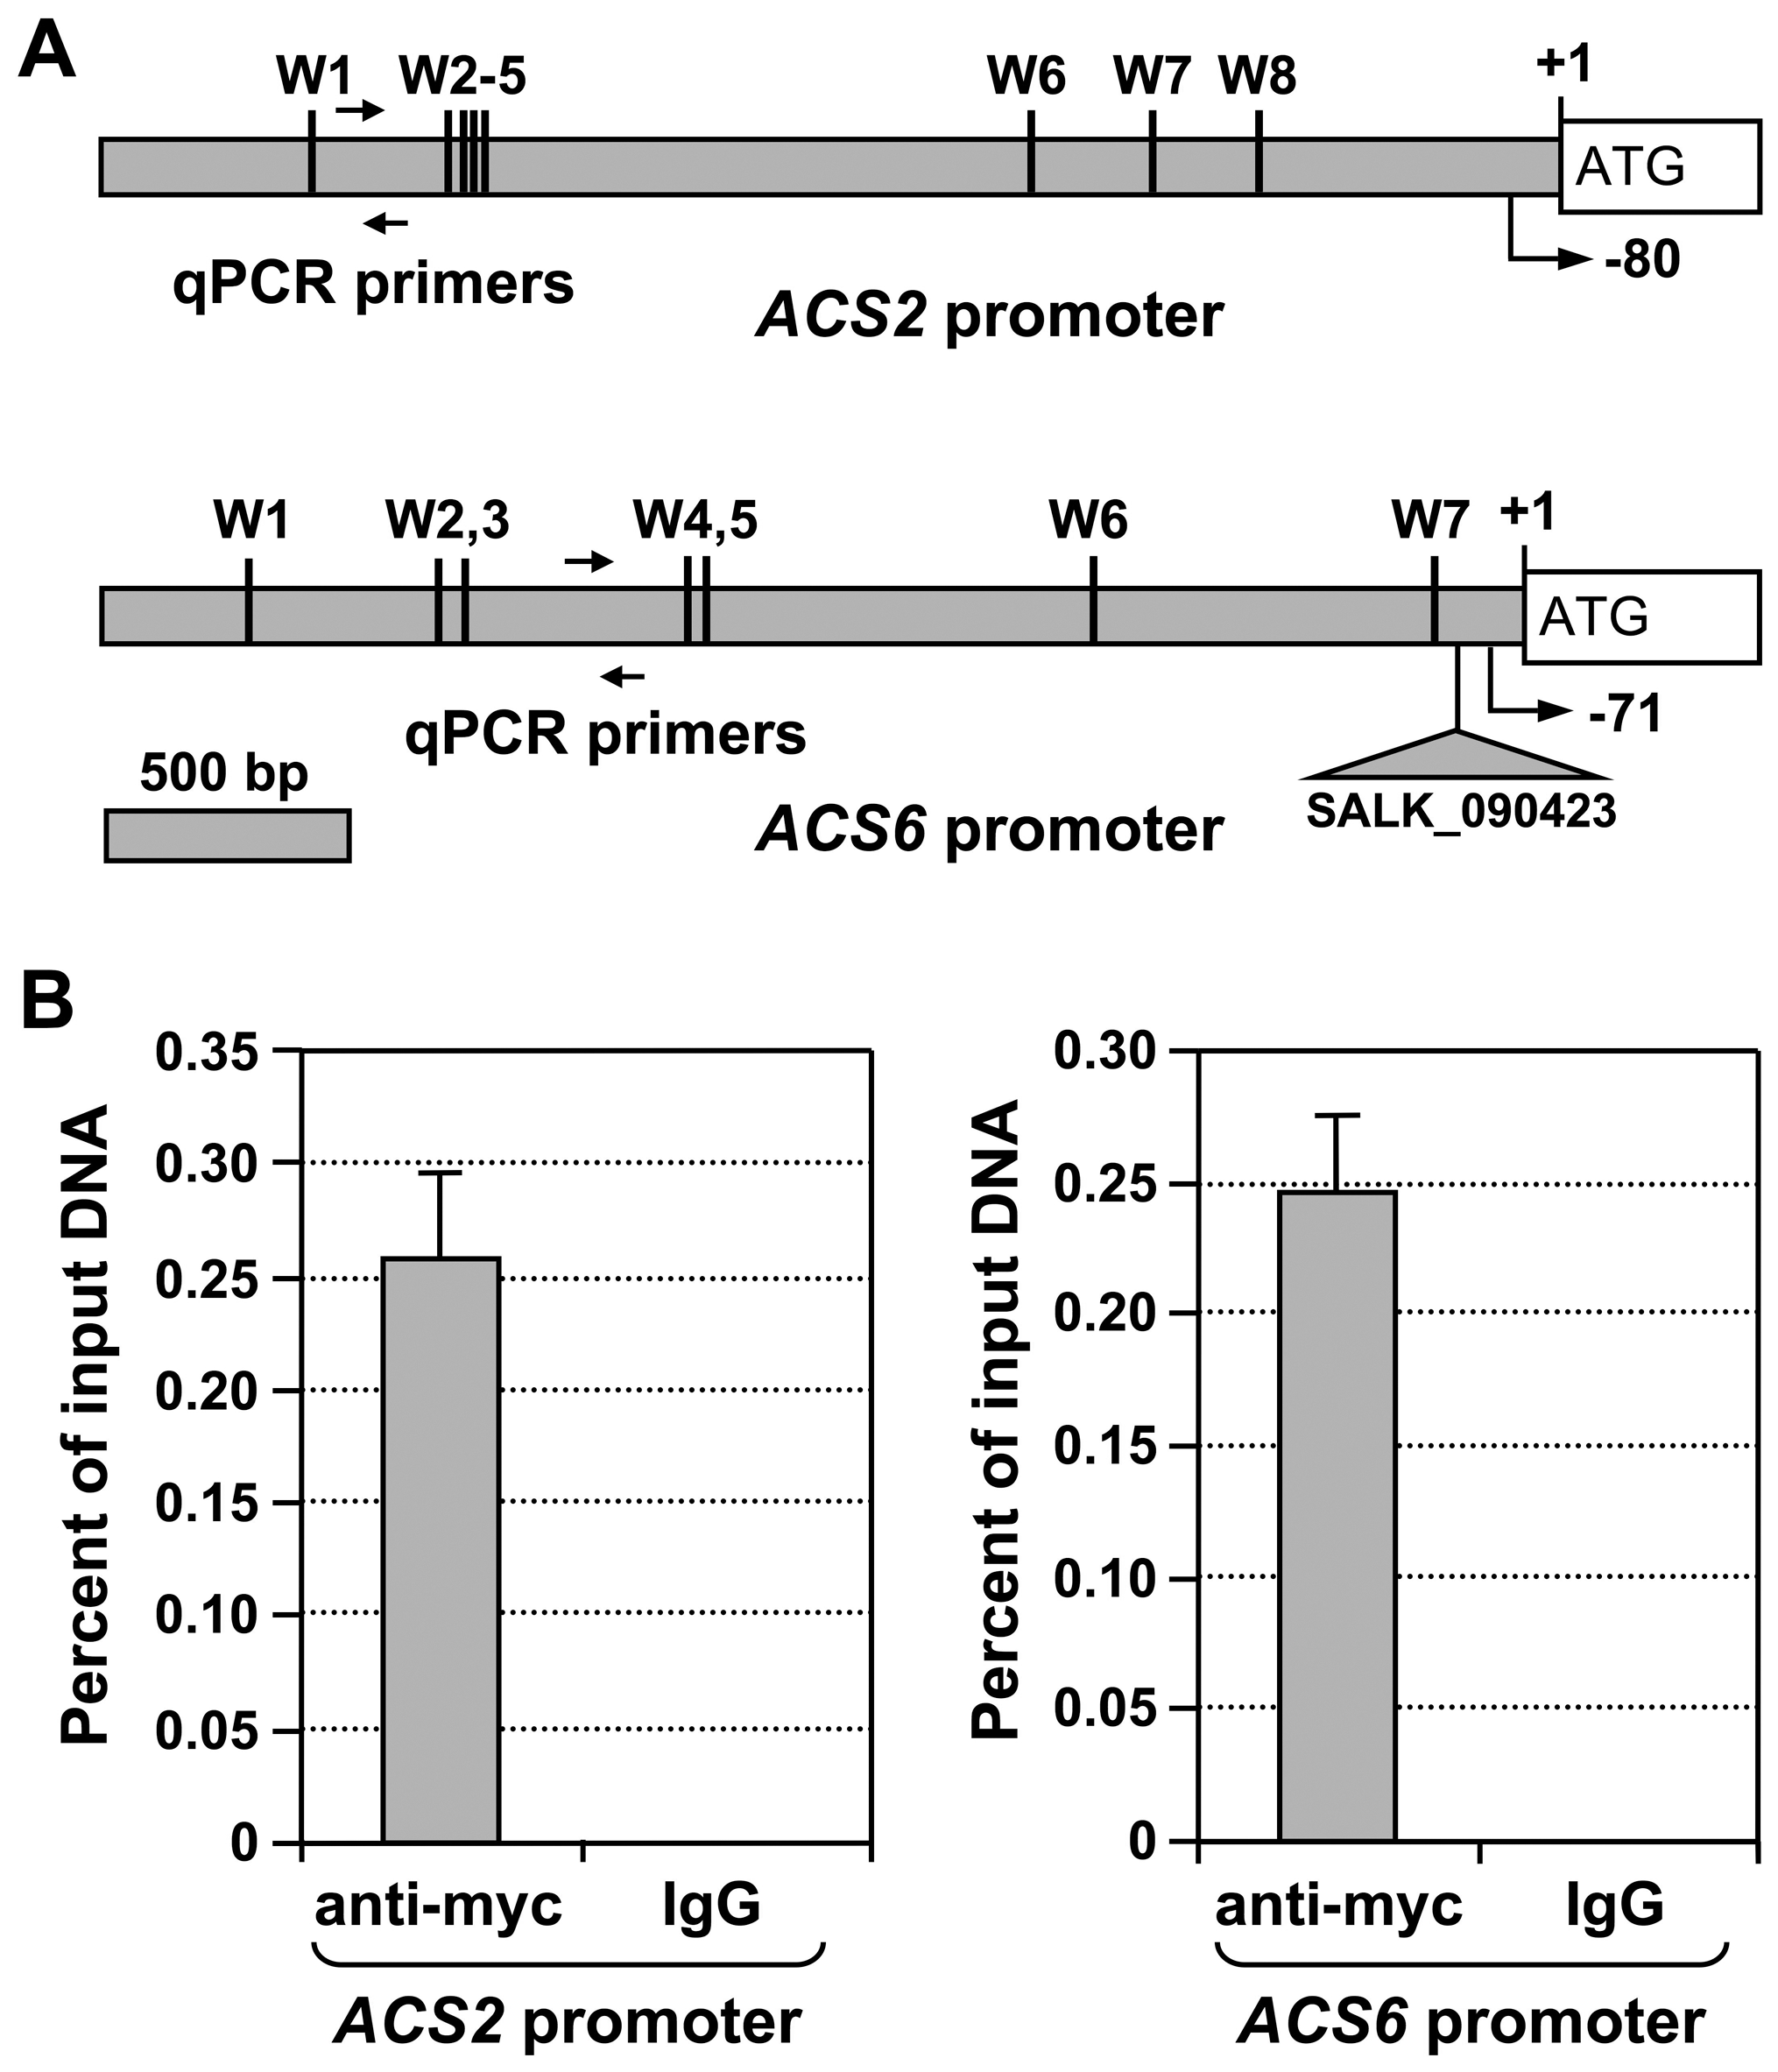 WRKY33 transcription factor binds to the promoter of <i>ACS2</i> and <i>ACS6</i> genes <i>in vivo</i>.